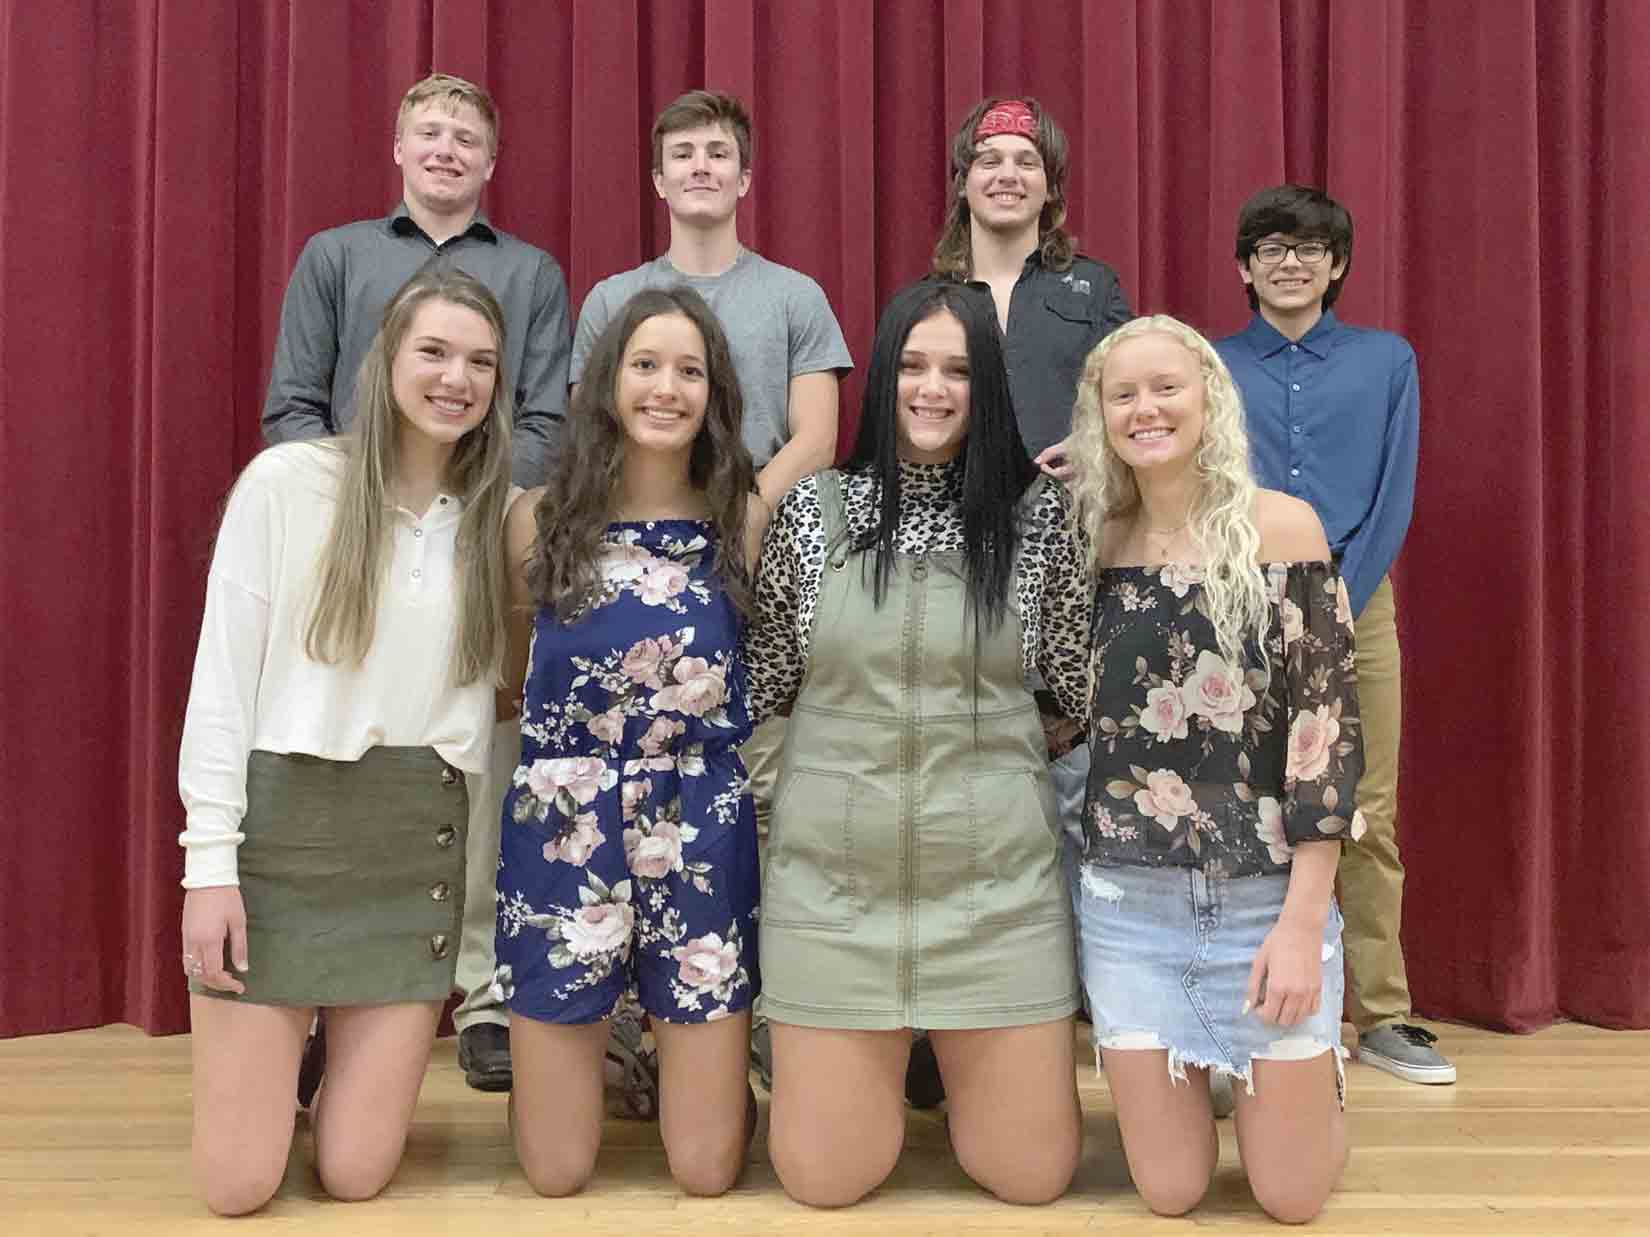 Members of the 2020 South Winneshiek Homecoming court include (front, l-r) Madison Kriener, Mary Frana, Presley Bushman, and Rebecca Wagner; (back) Jacob Herold, Cael Kuboushek, Jace Nahl, and Mark Flores. Coronation will be held via a live stream at 2:45 on Thursday (public is not allowed). (...